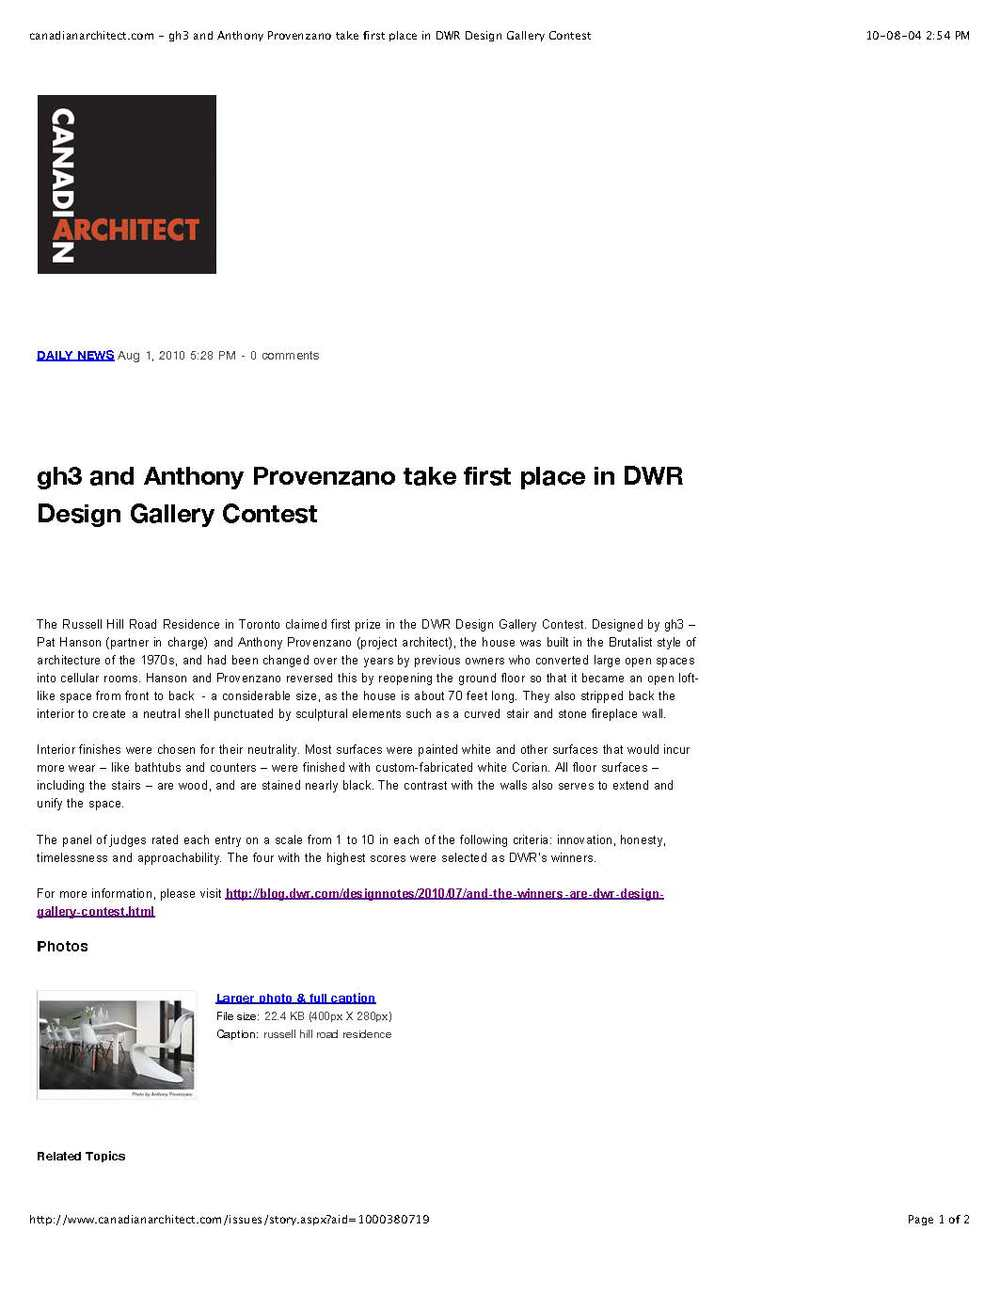 canadianarchitect.com - gh3 and Anthony Provenzano take first place in DWR Design Gallery Contest.jpg